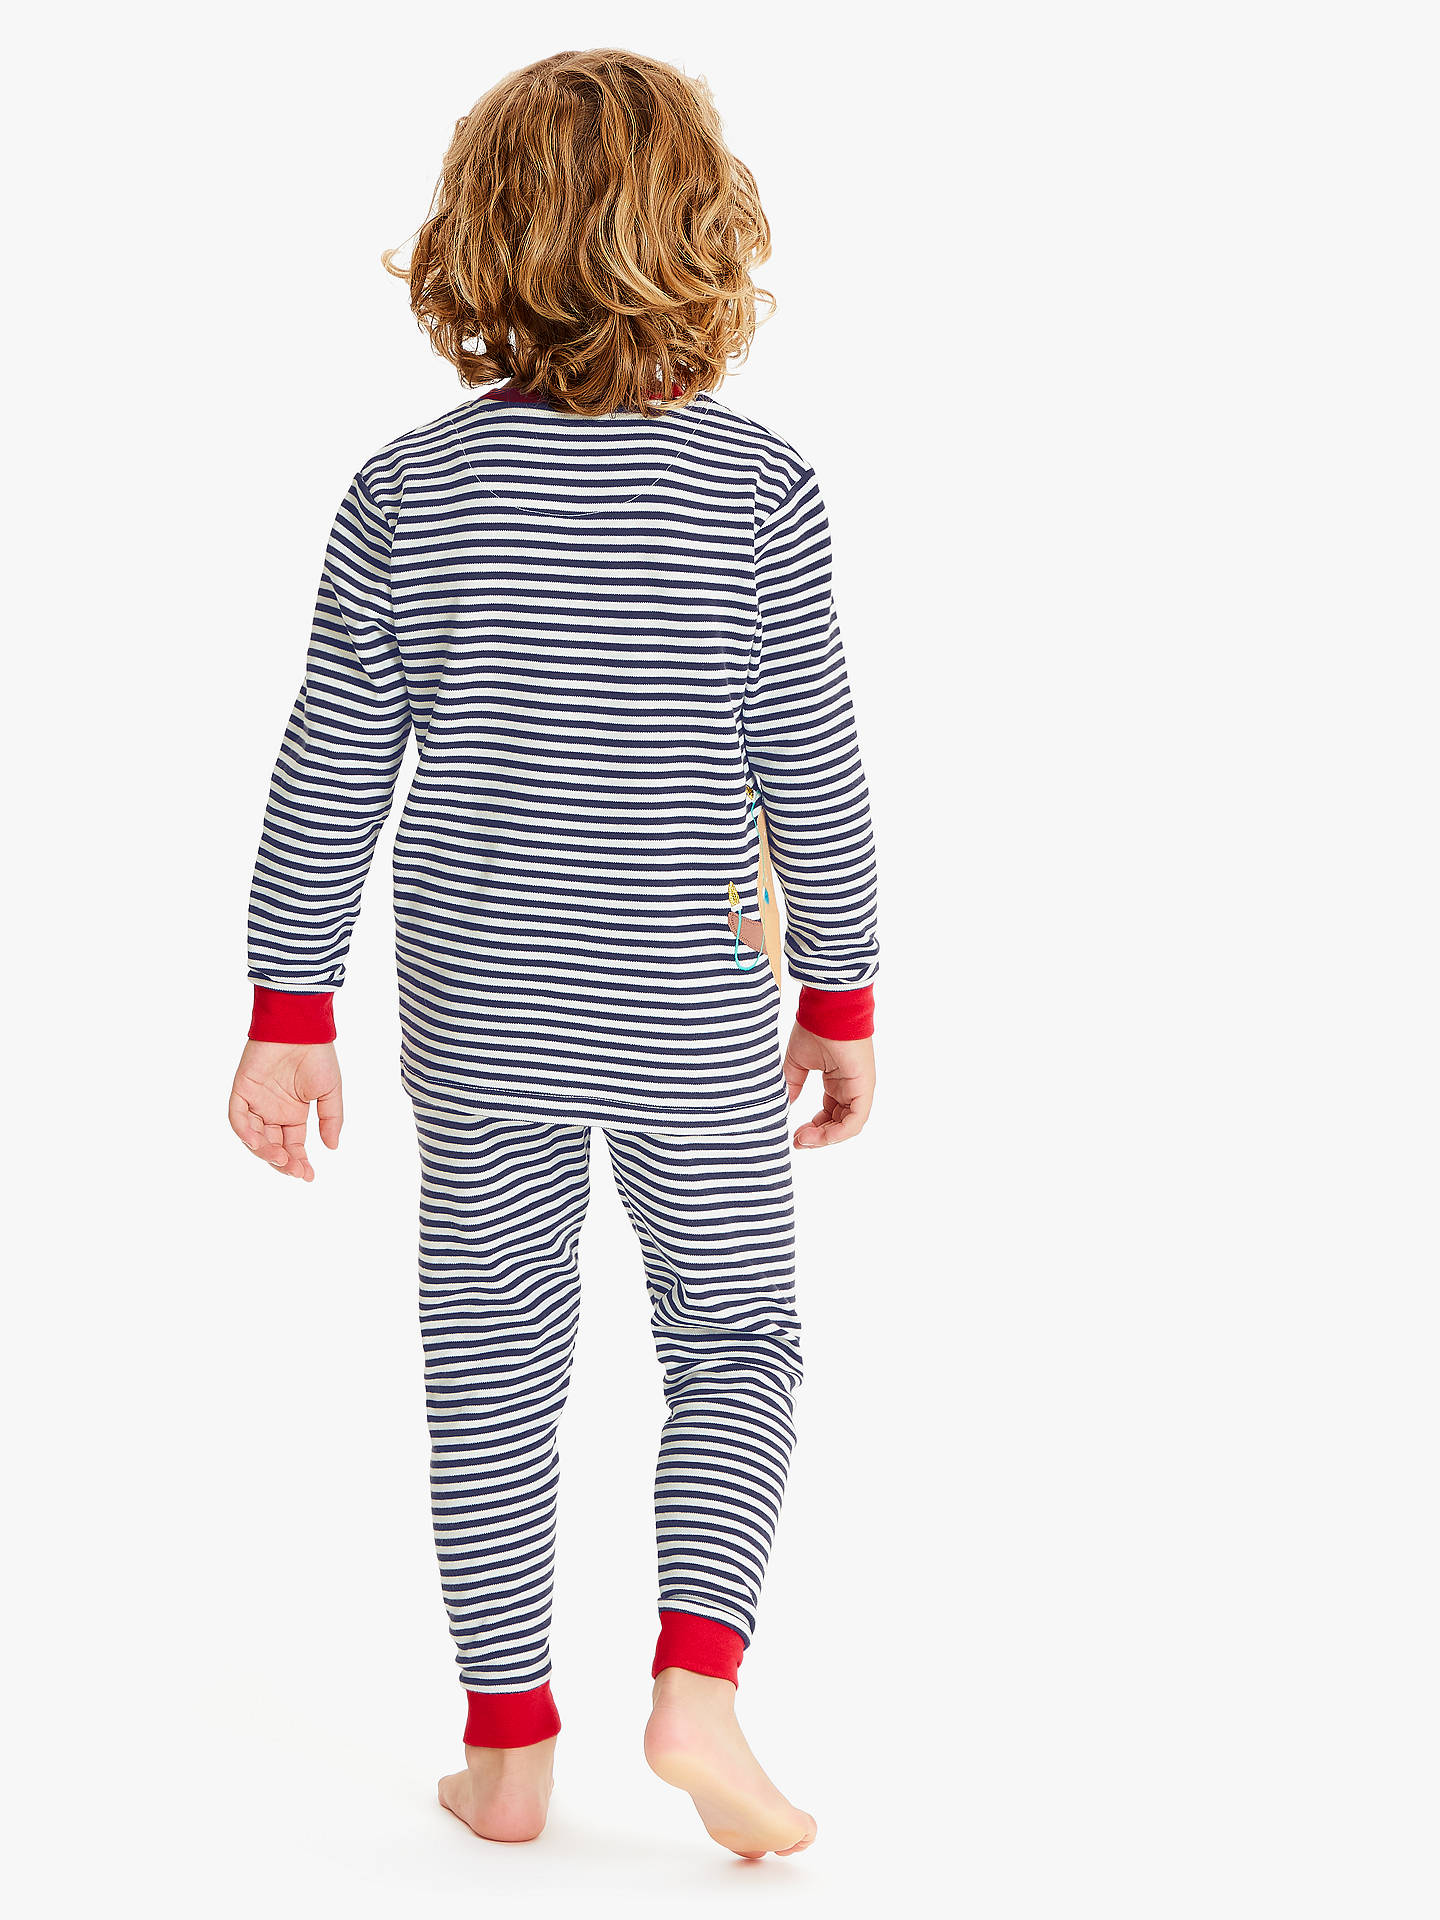 Buy John Lewis & Partners Boys' Christmas Sloth Pyjamas, Pack of 2, Blue, 12 years Online at johnlewis.com